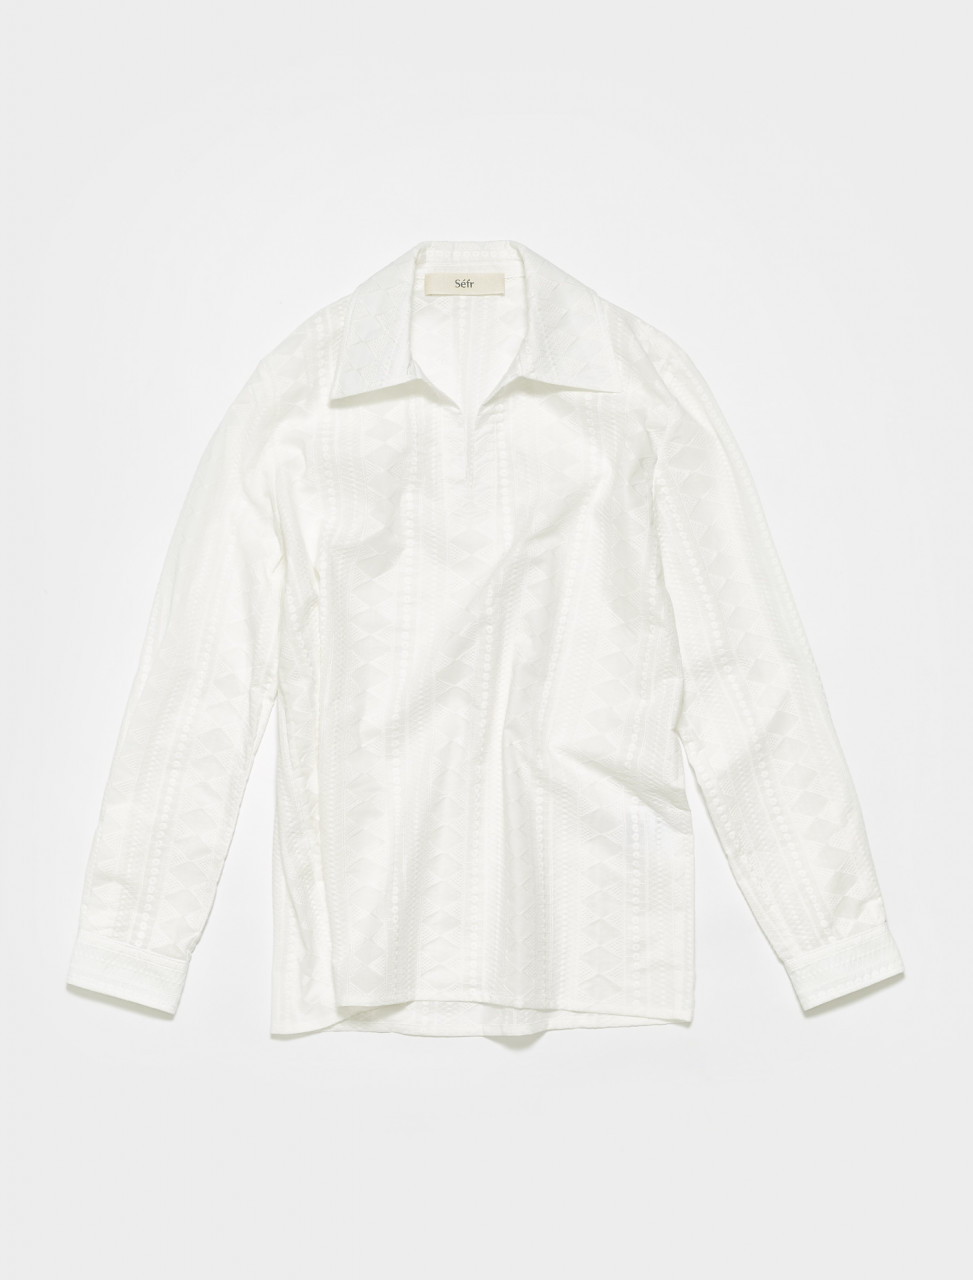 MS-LW SEFR MATE SHIRT IN LIVING WHITE